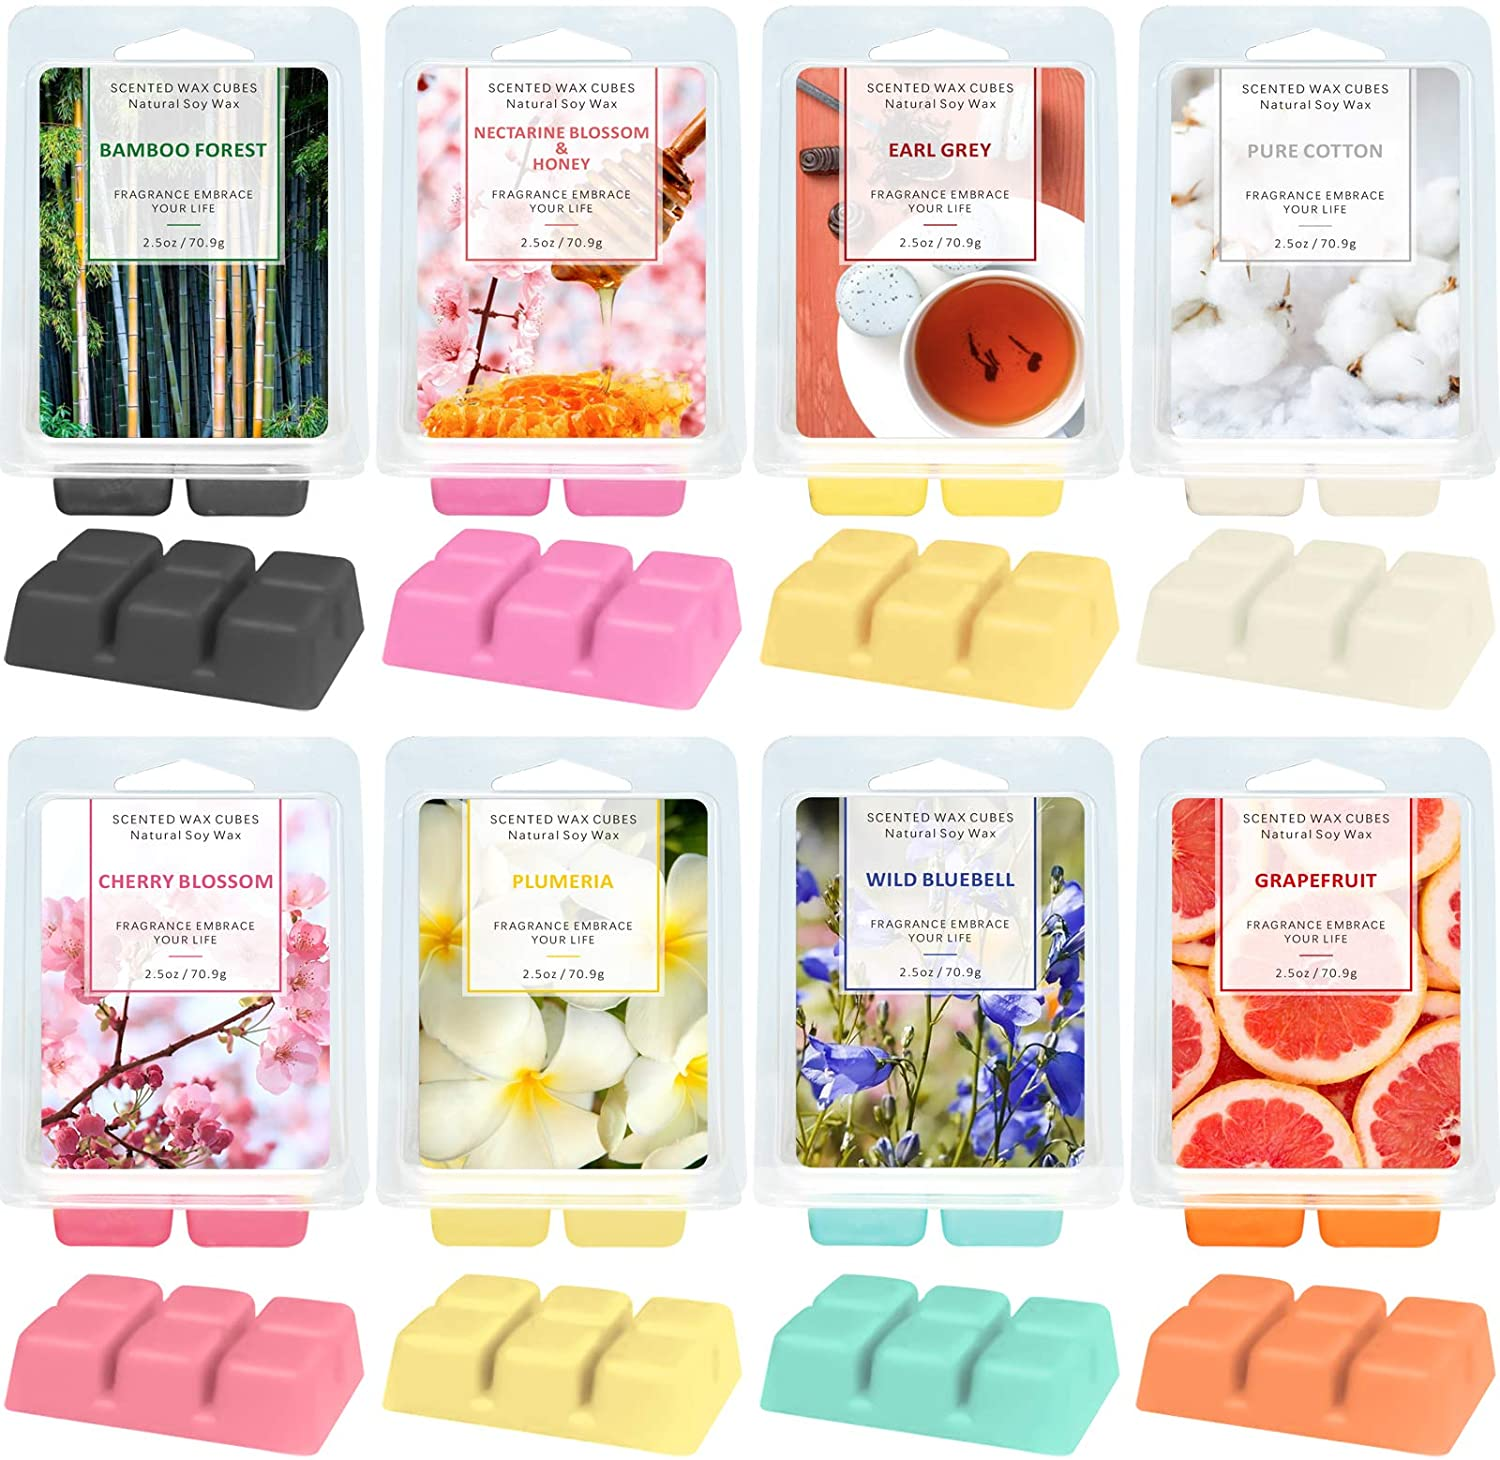 LA BELLEFÉE Scented Wax Melts,Cube Wax Melts,Floral Wax Melts,Candle Wax Warmer Melts,Wax Cubes for Home, Scented Natural Soy Wax Cube,8X 2.5 oz